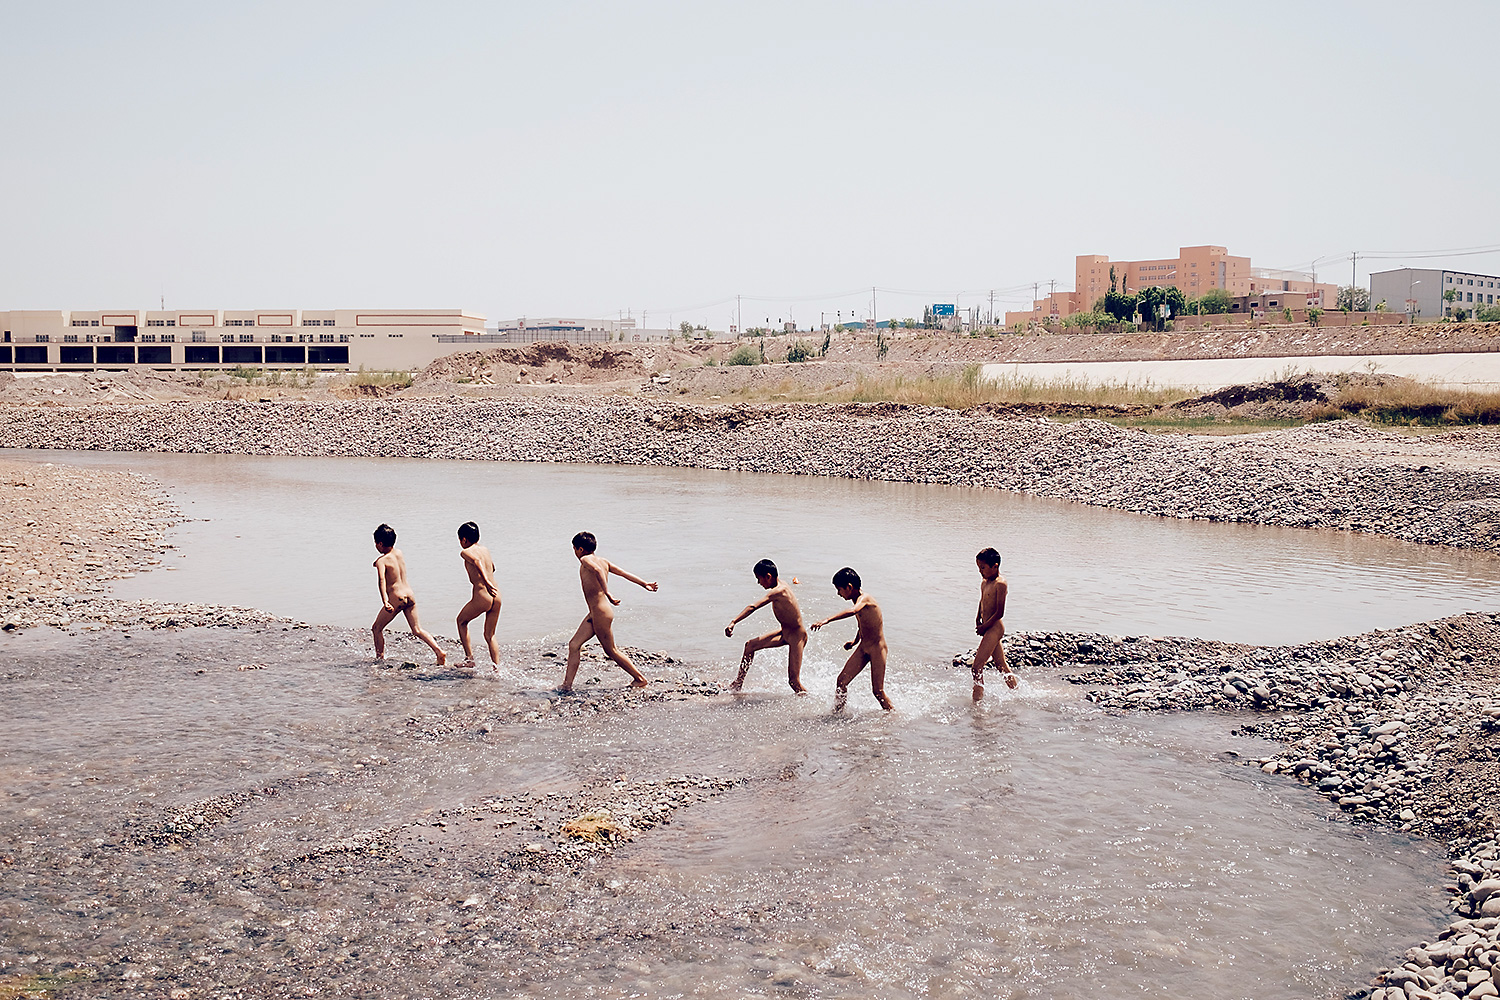 Children run through the Tailiwei Quke River in Guangzhou New City, Kashgar. New links with Guangdong are spurring growth in this arid region, formerly an oasis on the old Silk Road trade route. The New City takes its name from Guangdong's capital, Guangzhou.